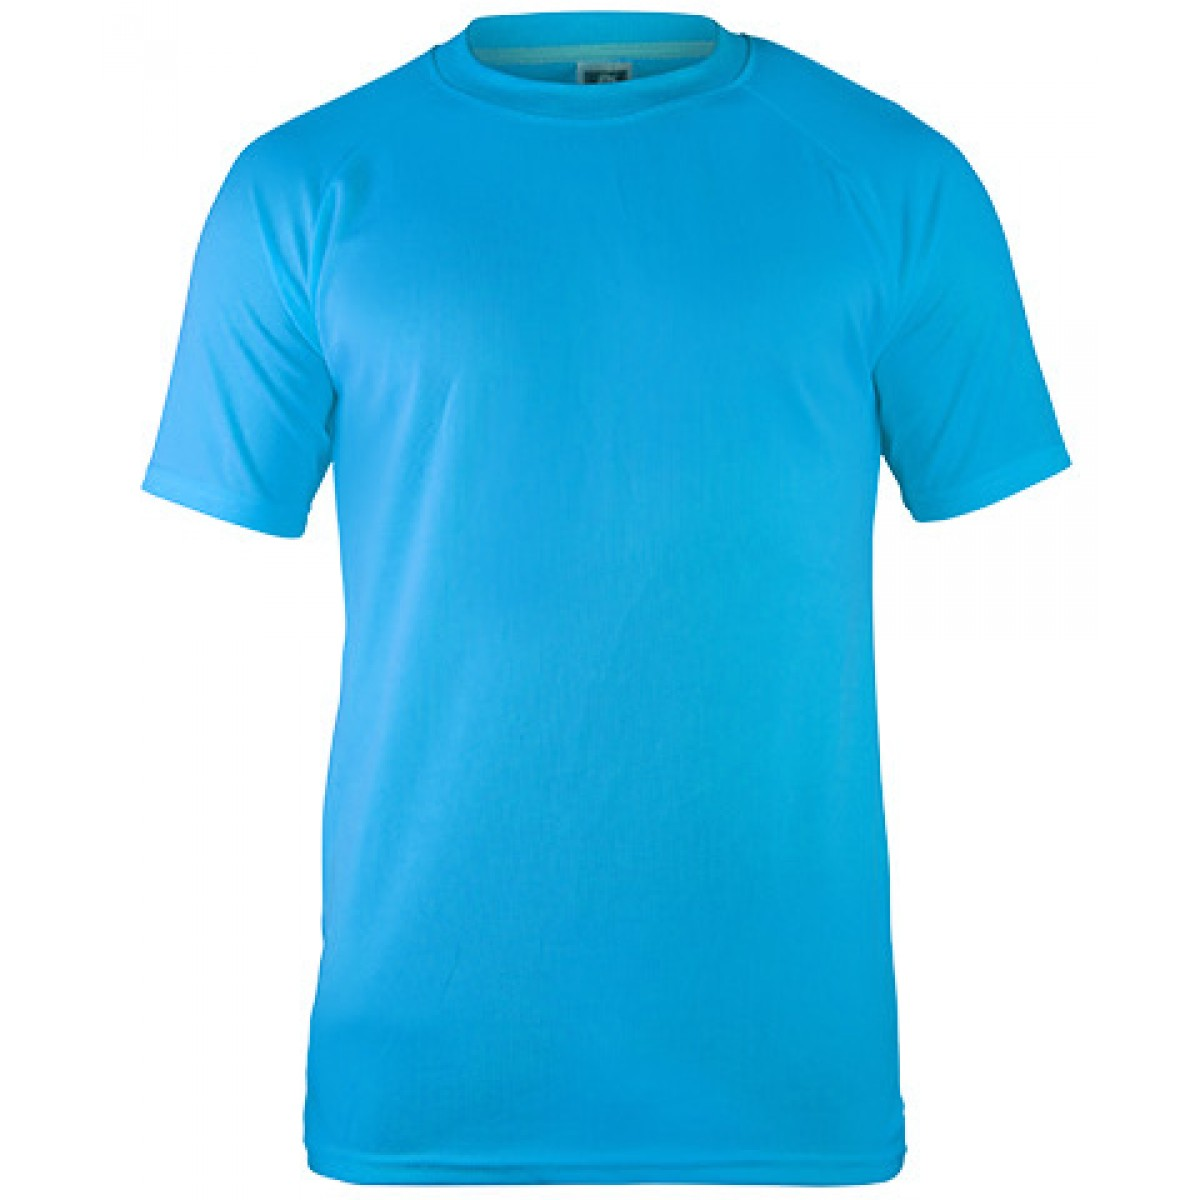 Short Sleeves Mesh Performance T-shirt-Blue-S